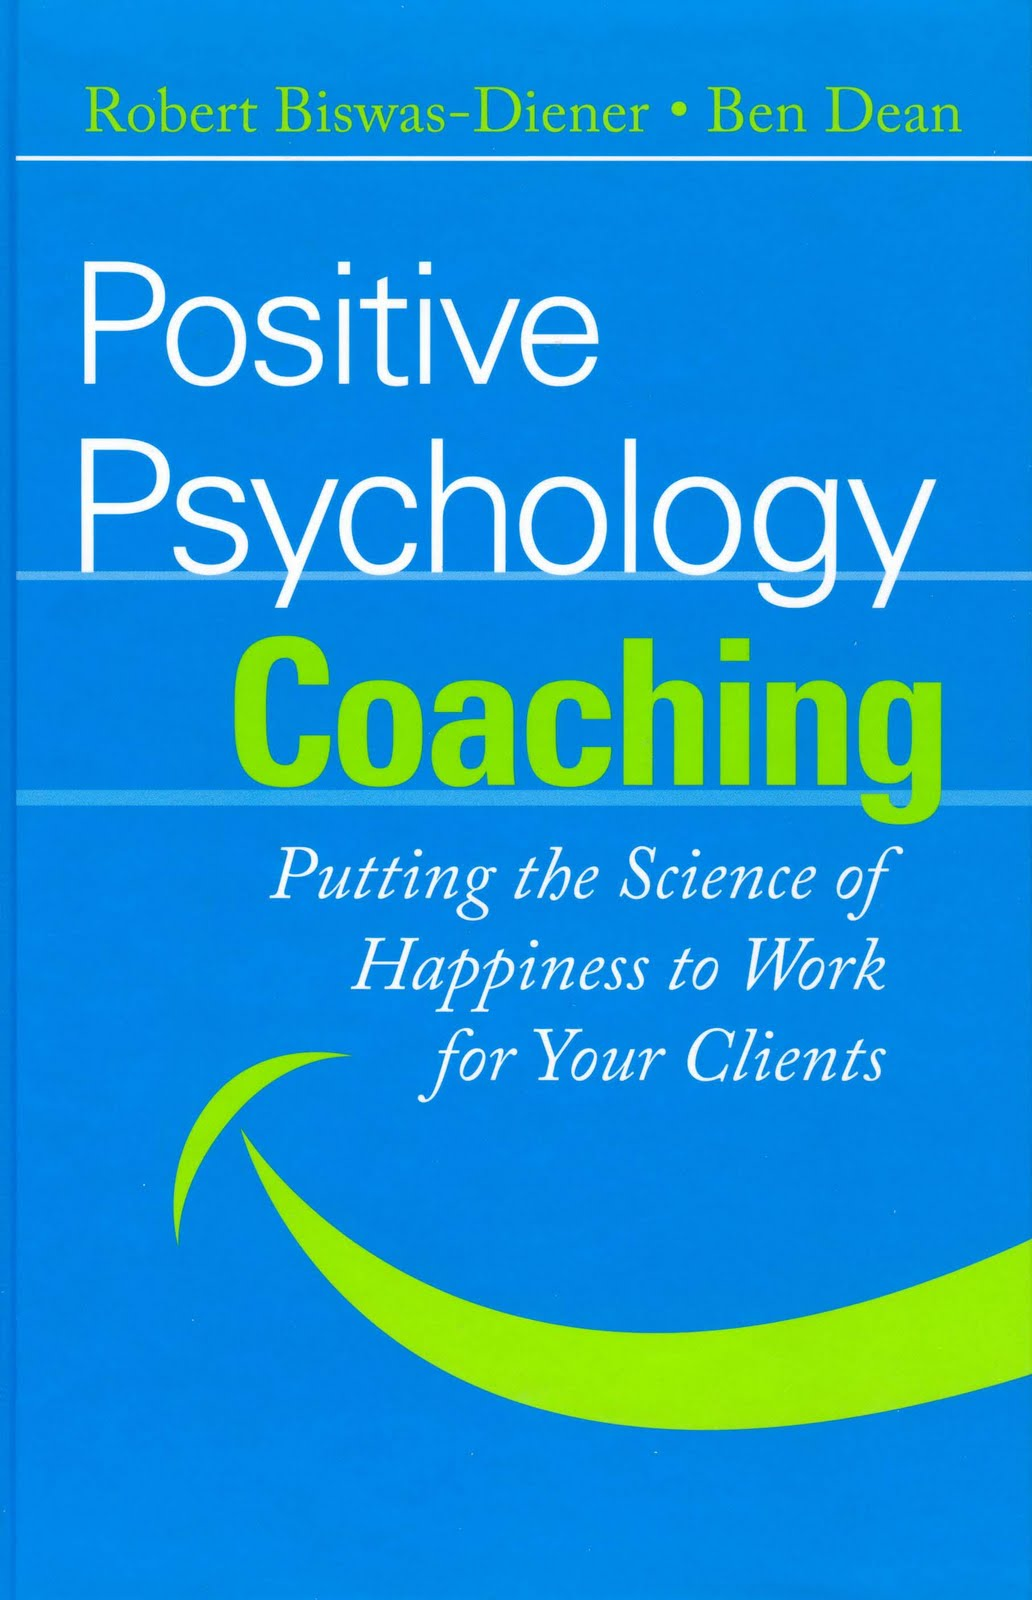 the psychology of coaching systemic psychodynamic coaching Executive coaching: systems-psychodynamic perspective [halina brunning] on amazoncom free shipping on qualifying offers a collection of papers by well-known contemporary writers that describe their own models of coaching and their thoughts on the theoretical roots that underpin their thinking and coaching practice.